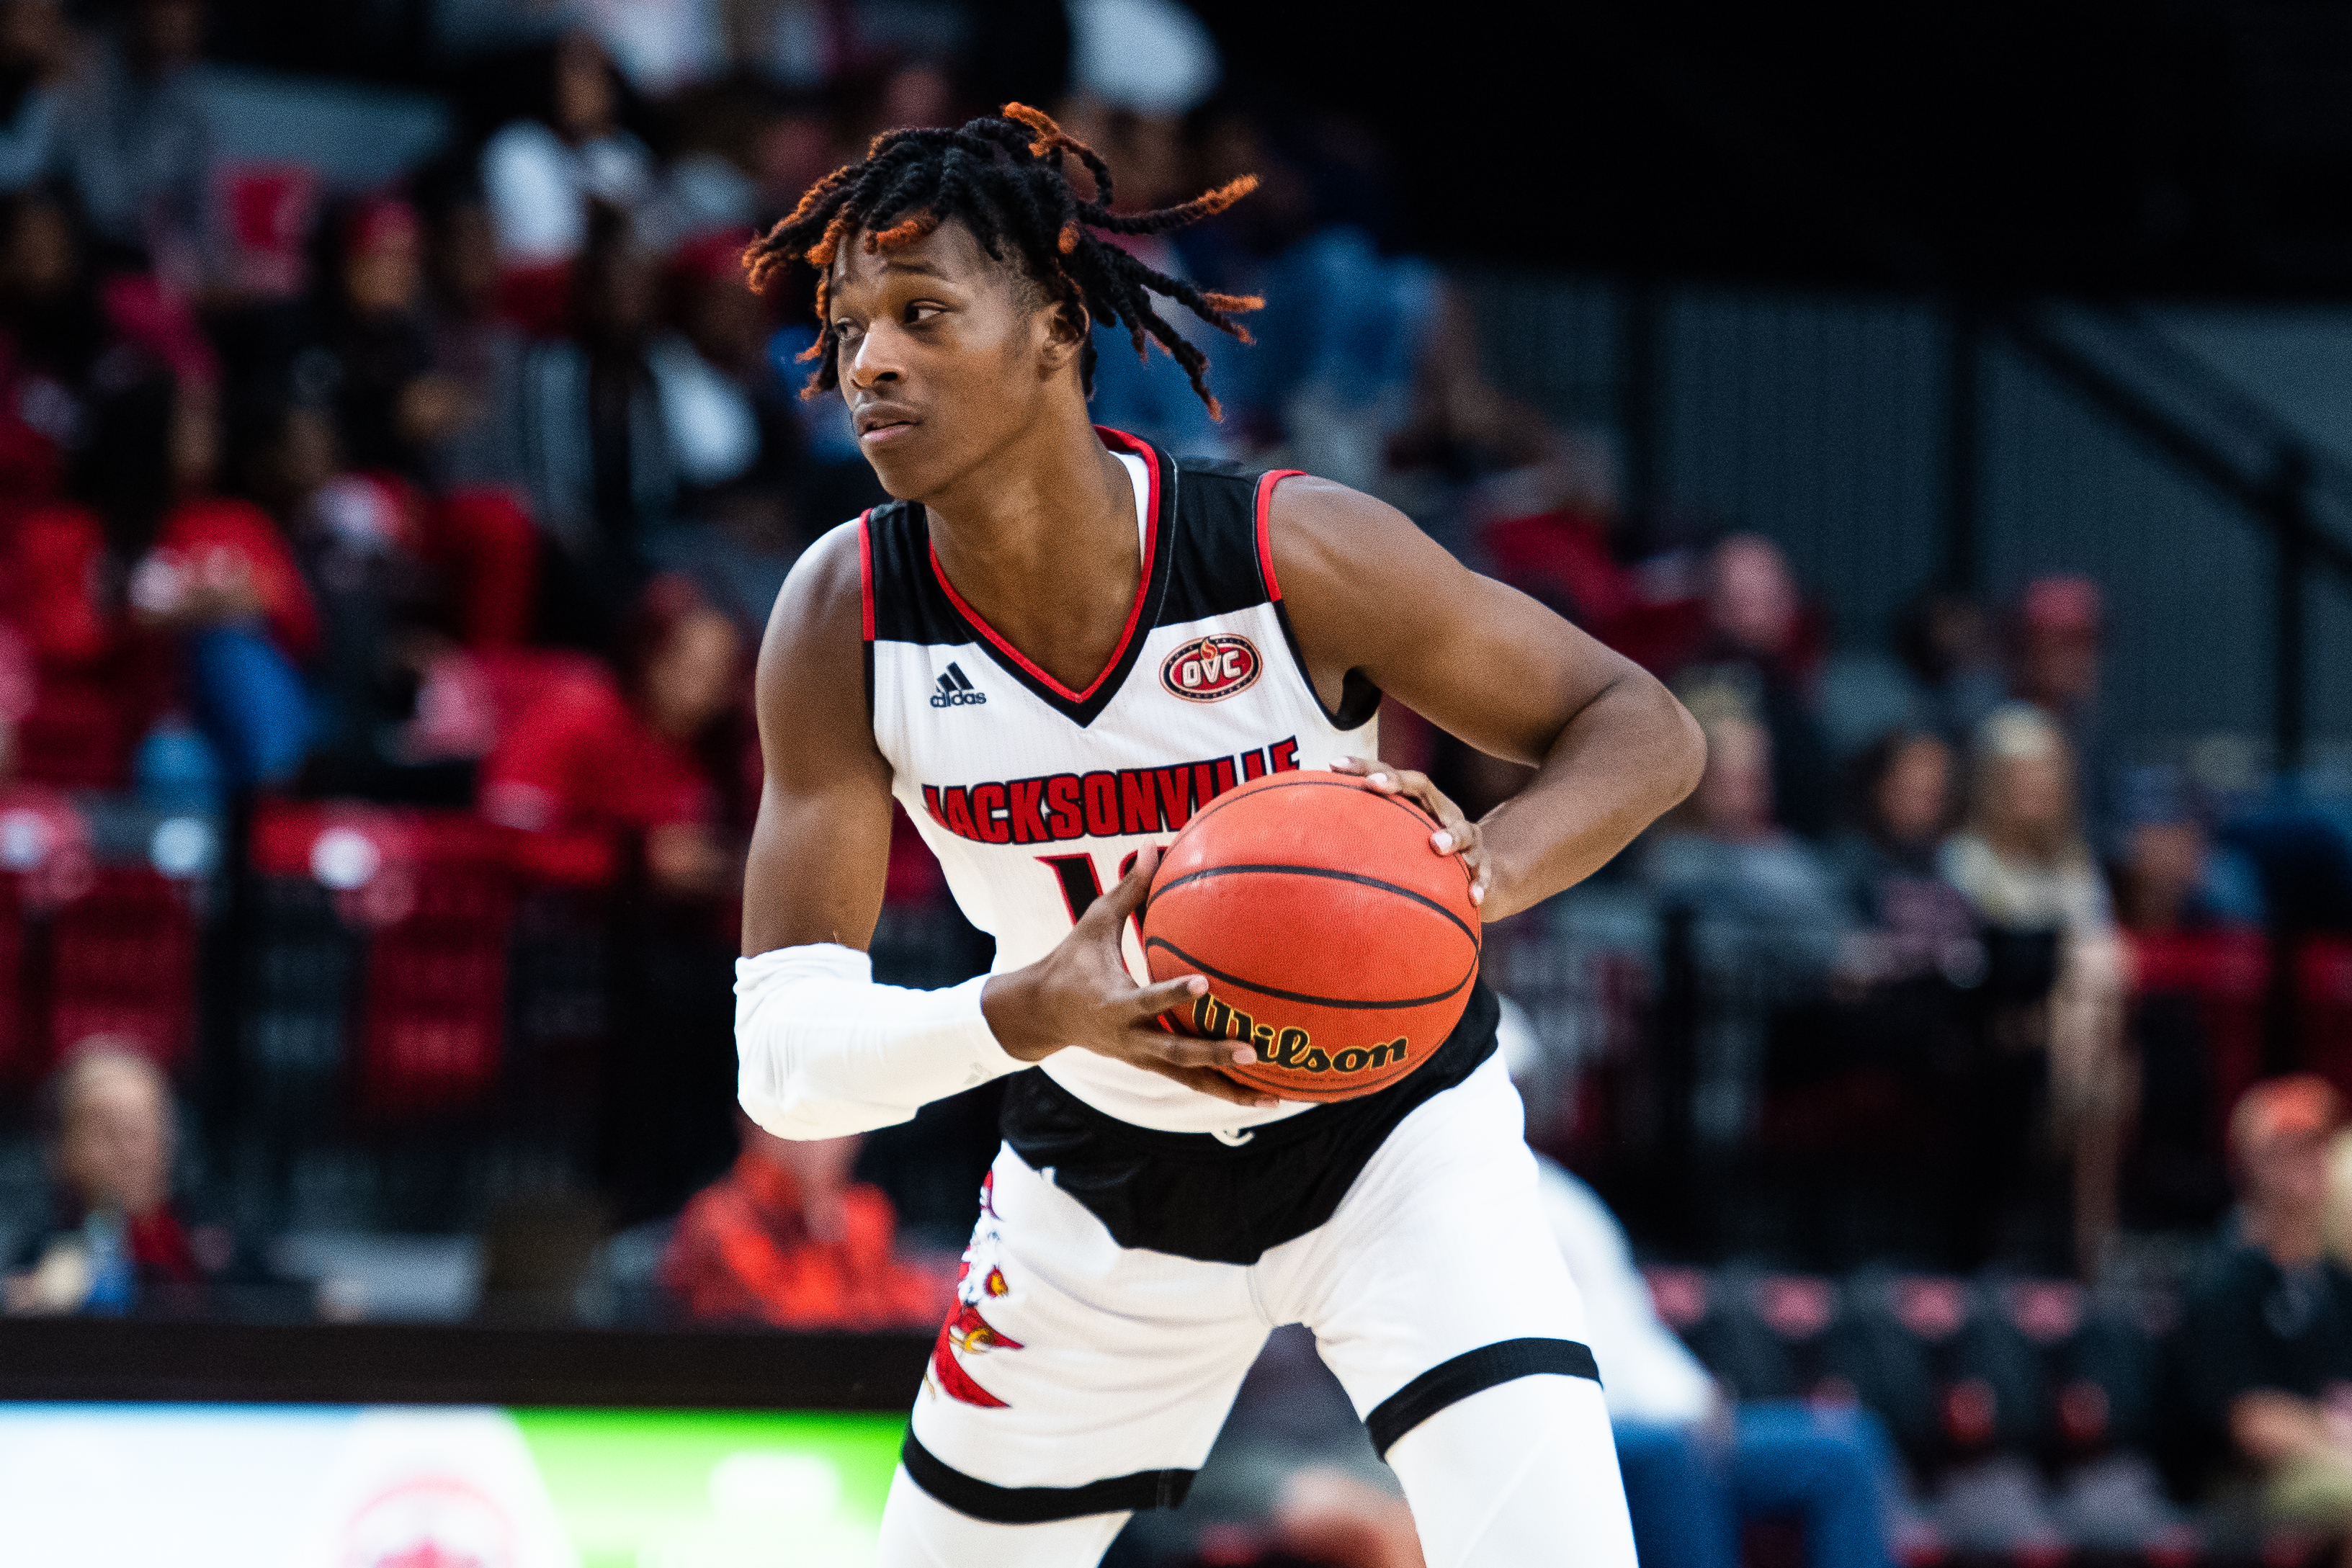 Juwan Perdue in triple threat in a game against Montevallo earlier in the 2019-2020 season. (Courtesy of JSU)